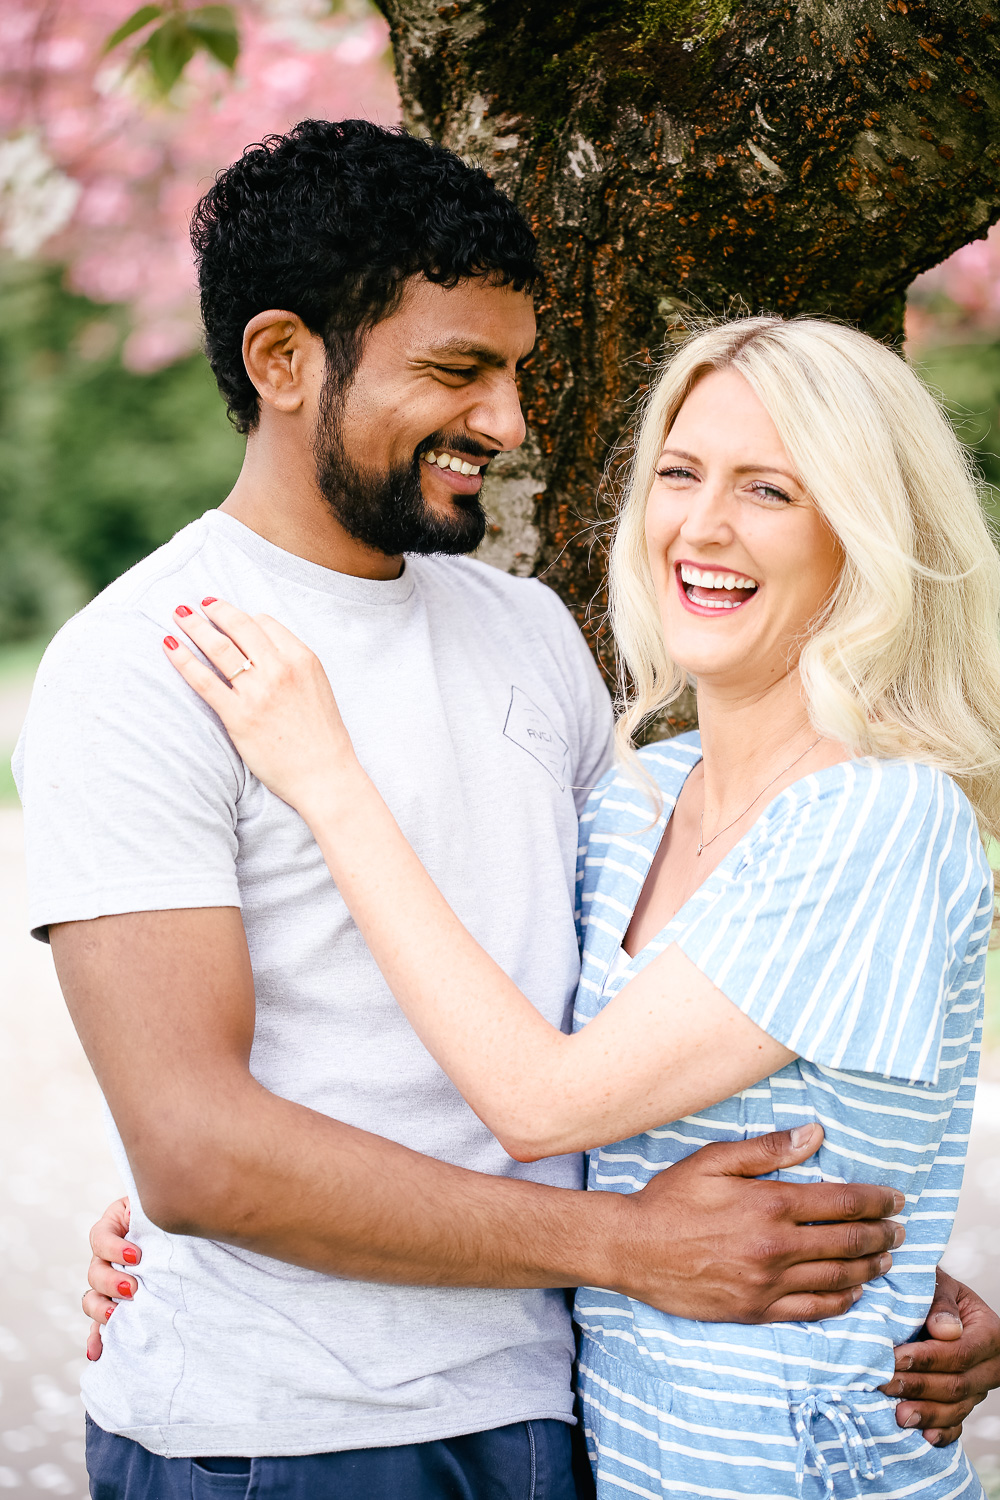 engagement portraits south wales - hannah timm photography